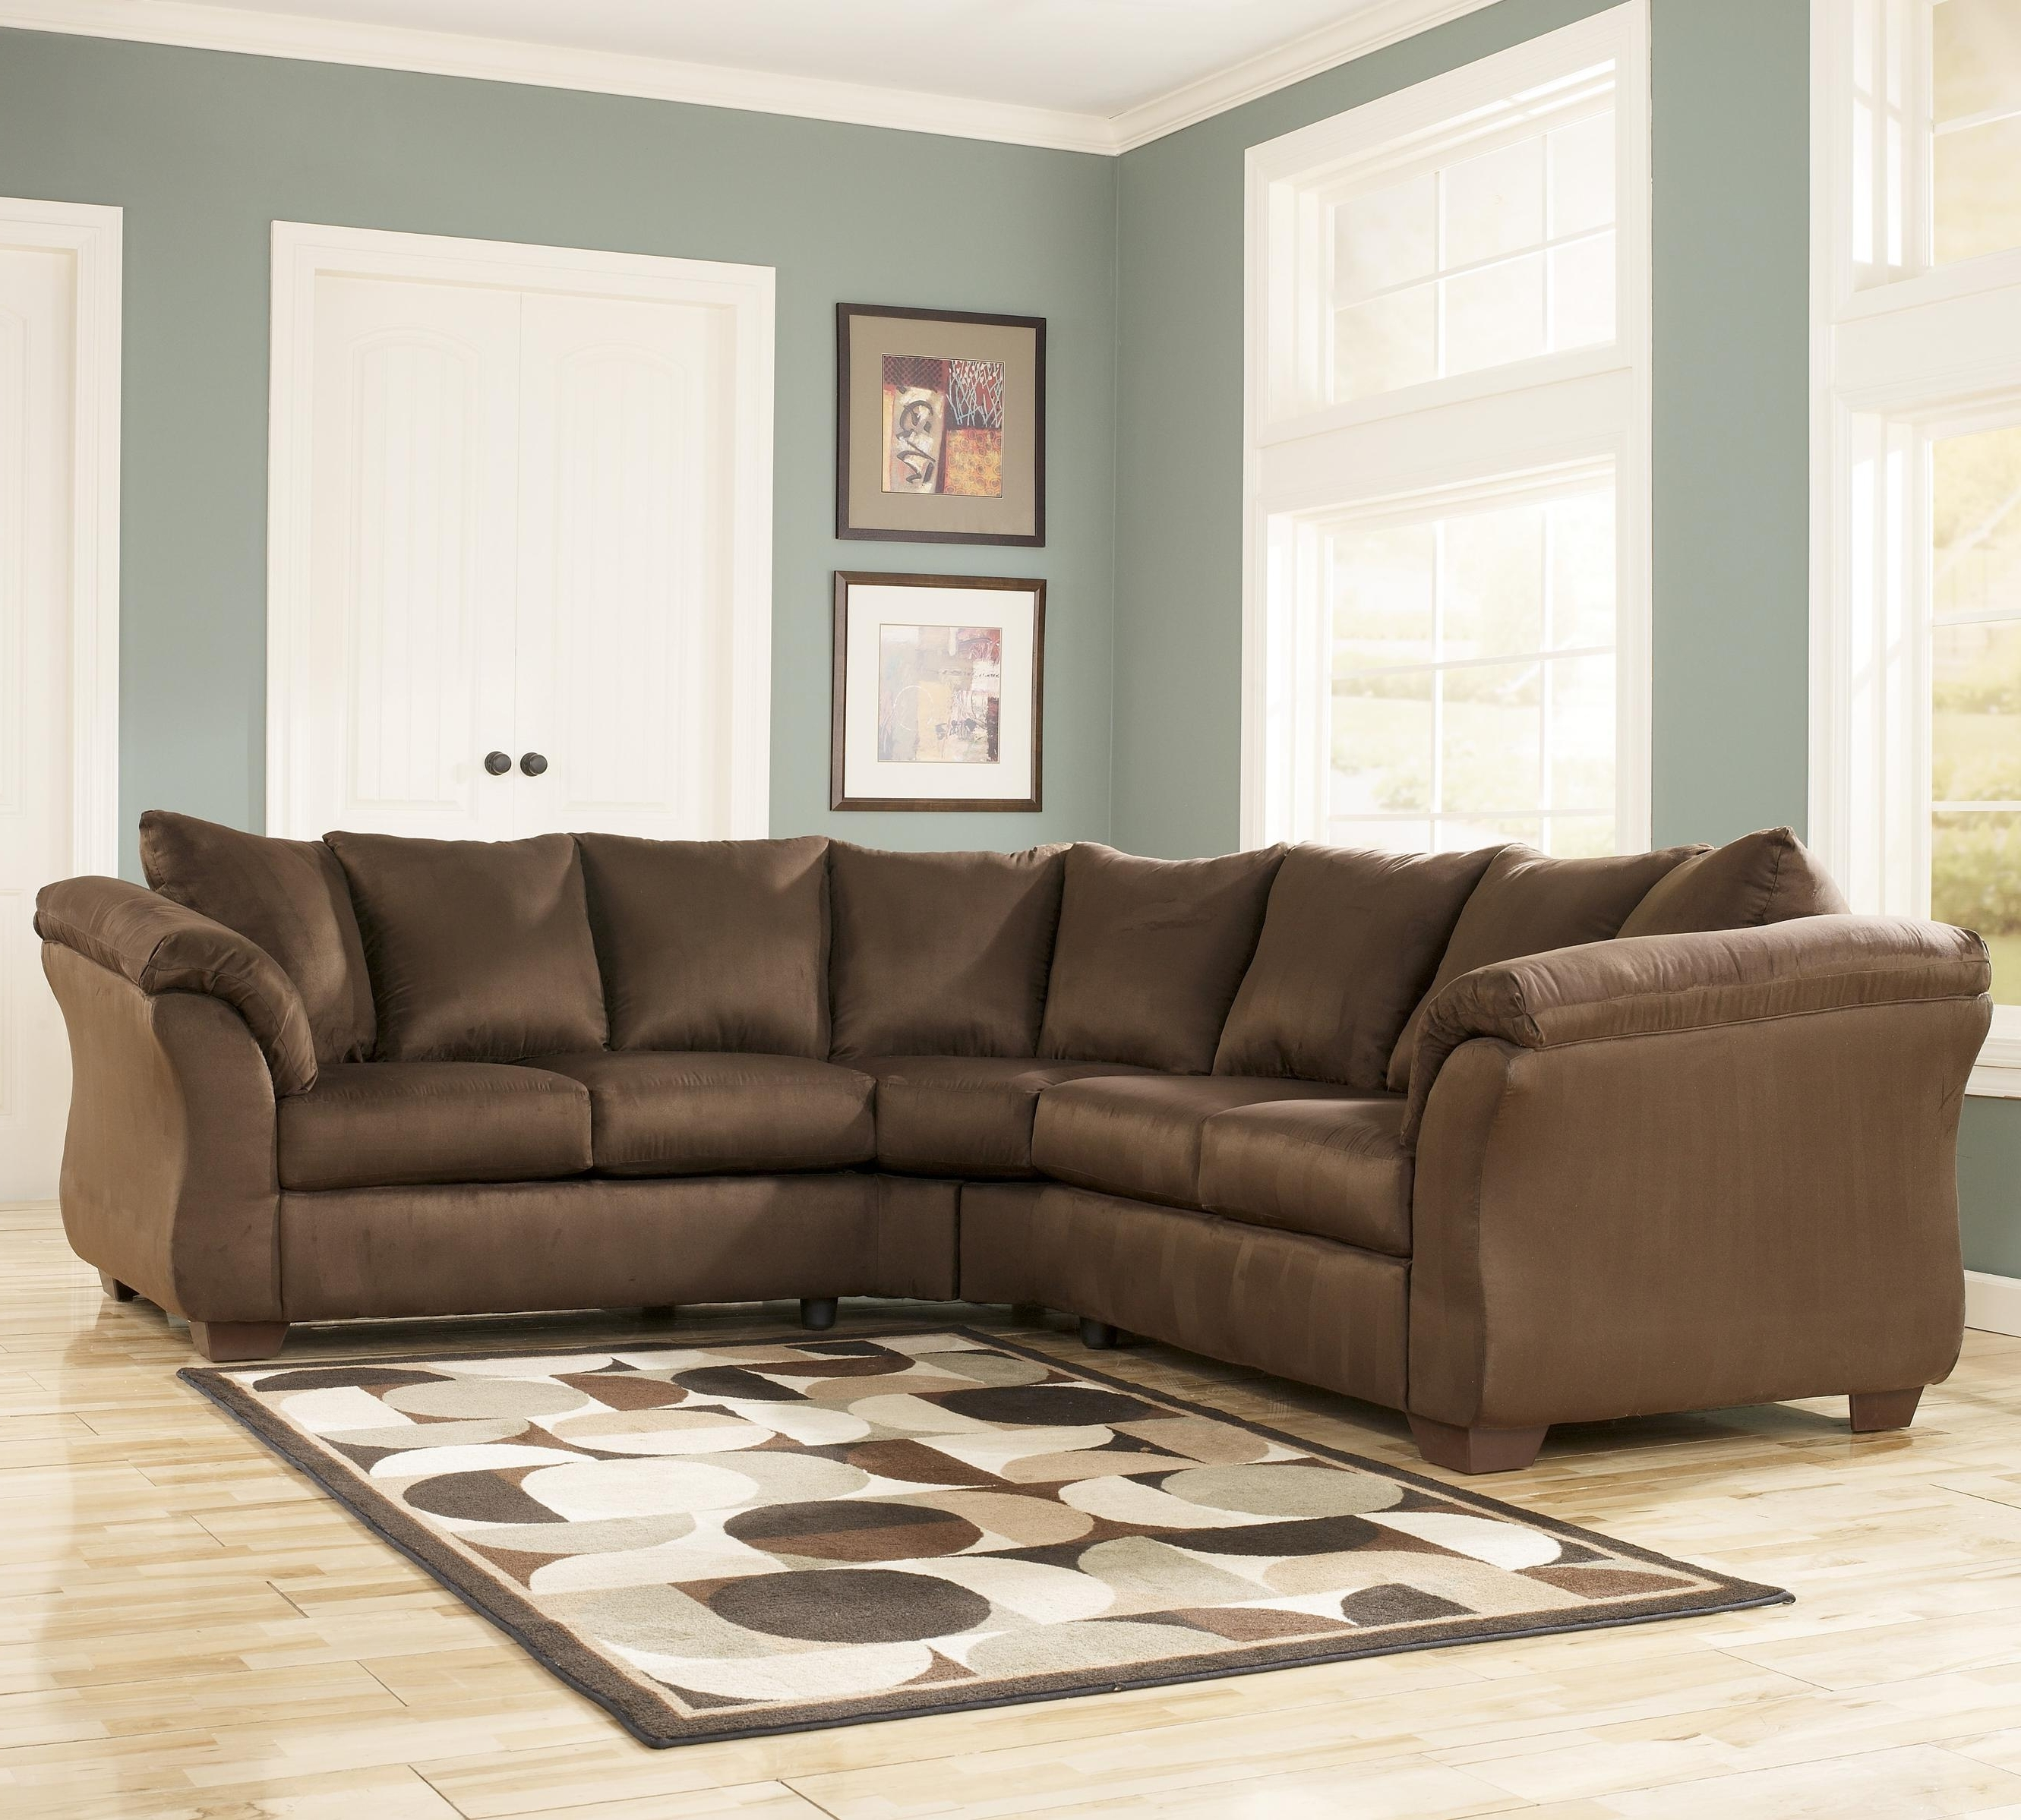 Best And Newest Gardiners Sectional Sofas Pertaining To Contemporary Sectional Sofa With Sweeping Pillow Armssignature (View 15 of 20)